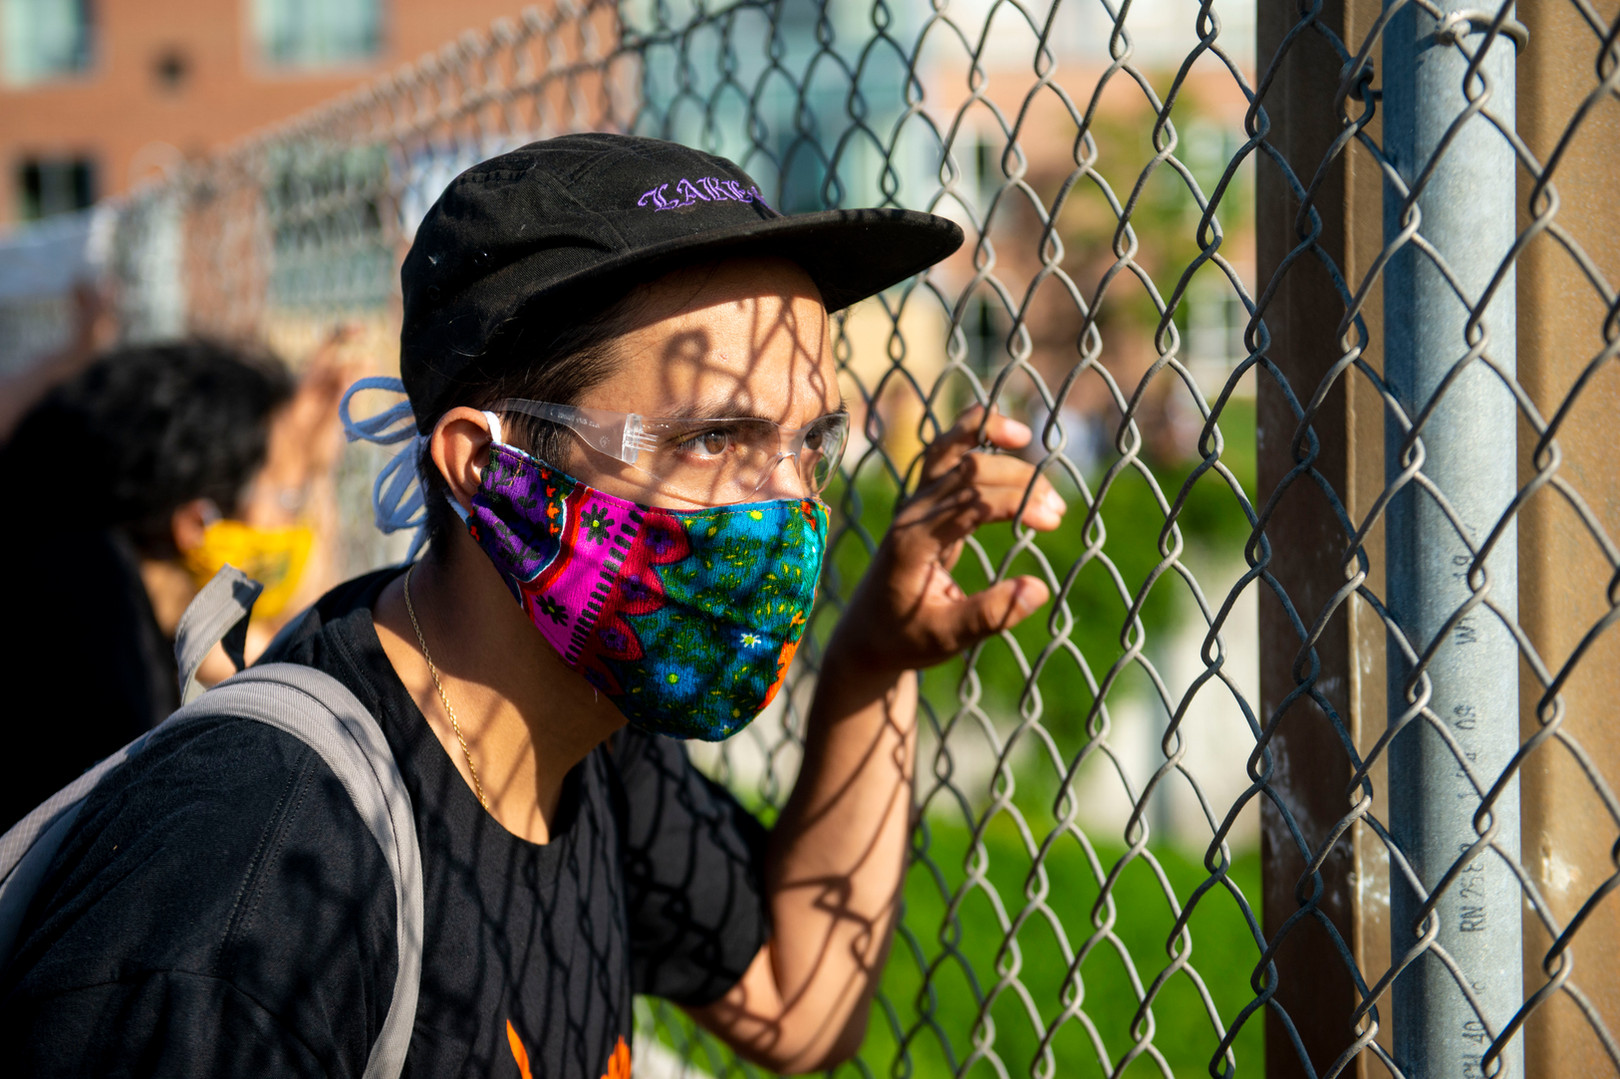 A protester looks through the fence on the bridge above 35W on Sunday, May 31.